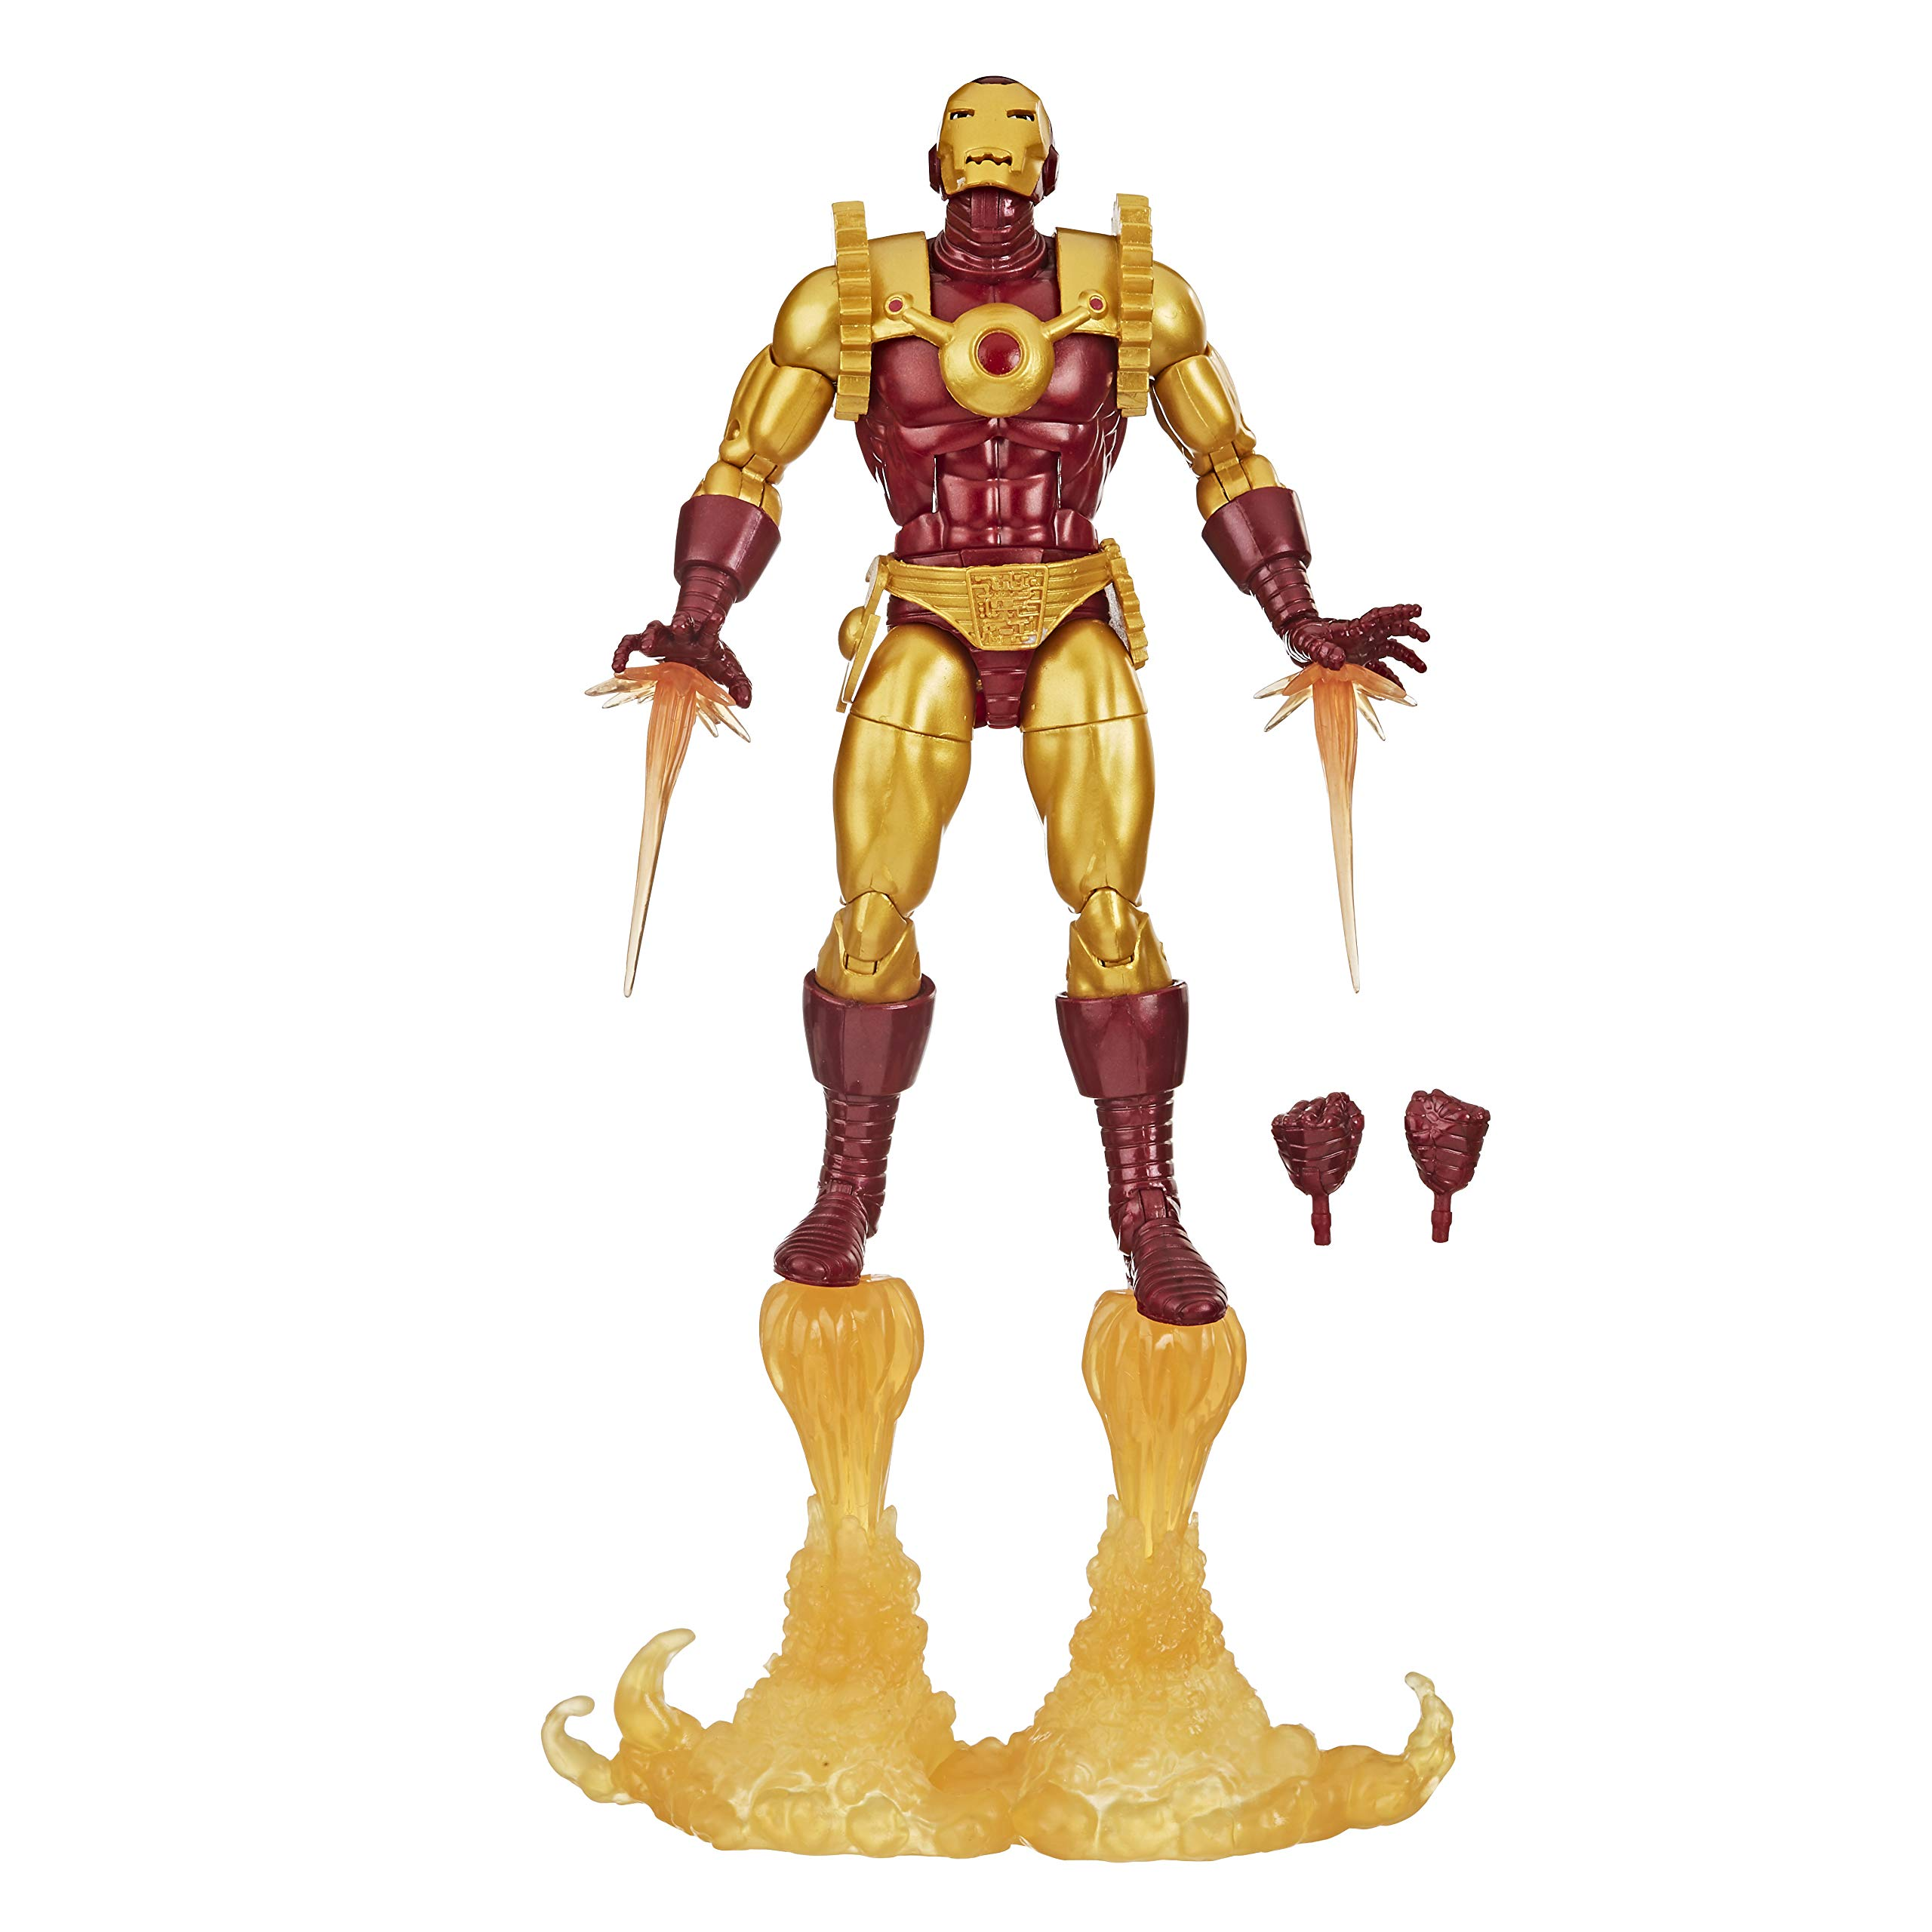 MARVEL Hasbro Legends Series Iron Man 6-inch Collectible Action Figure Iron Man 2020 Toy, Premium Design and 8 Accessories, Ages 4 And Up